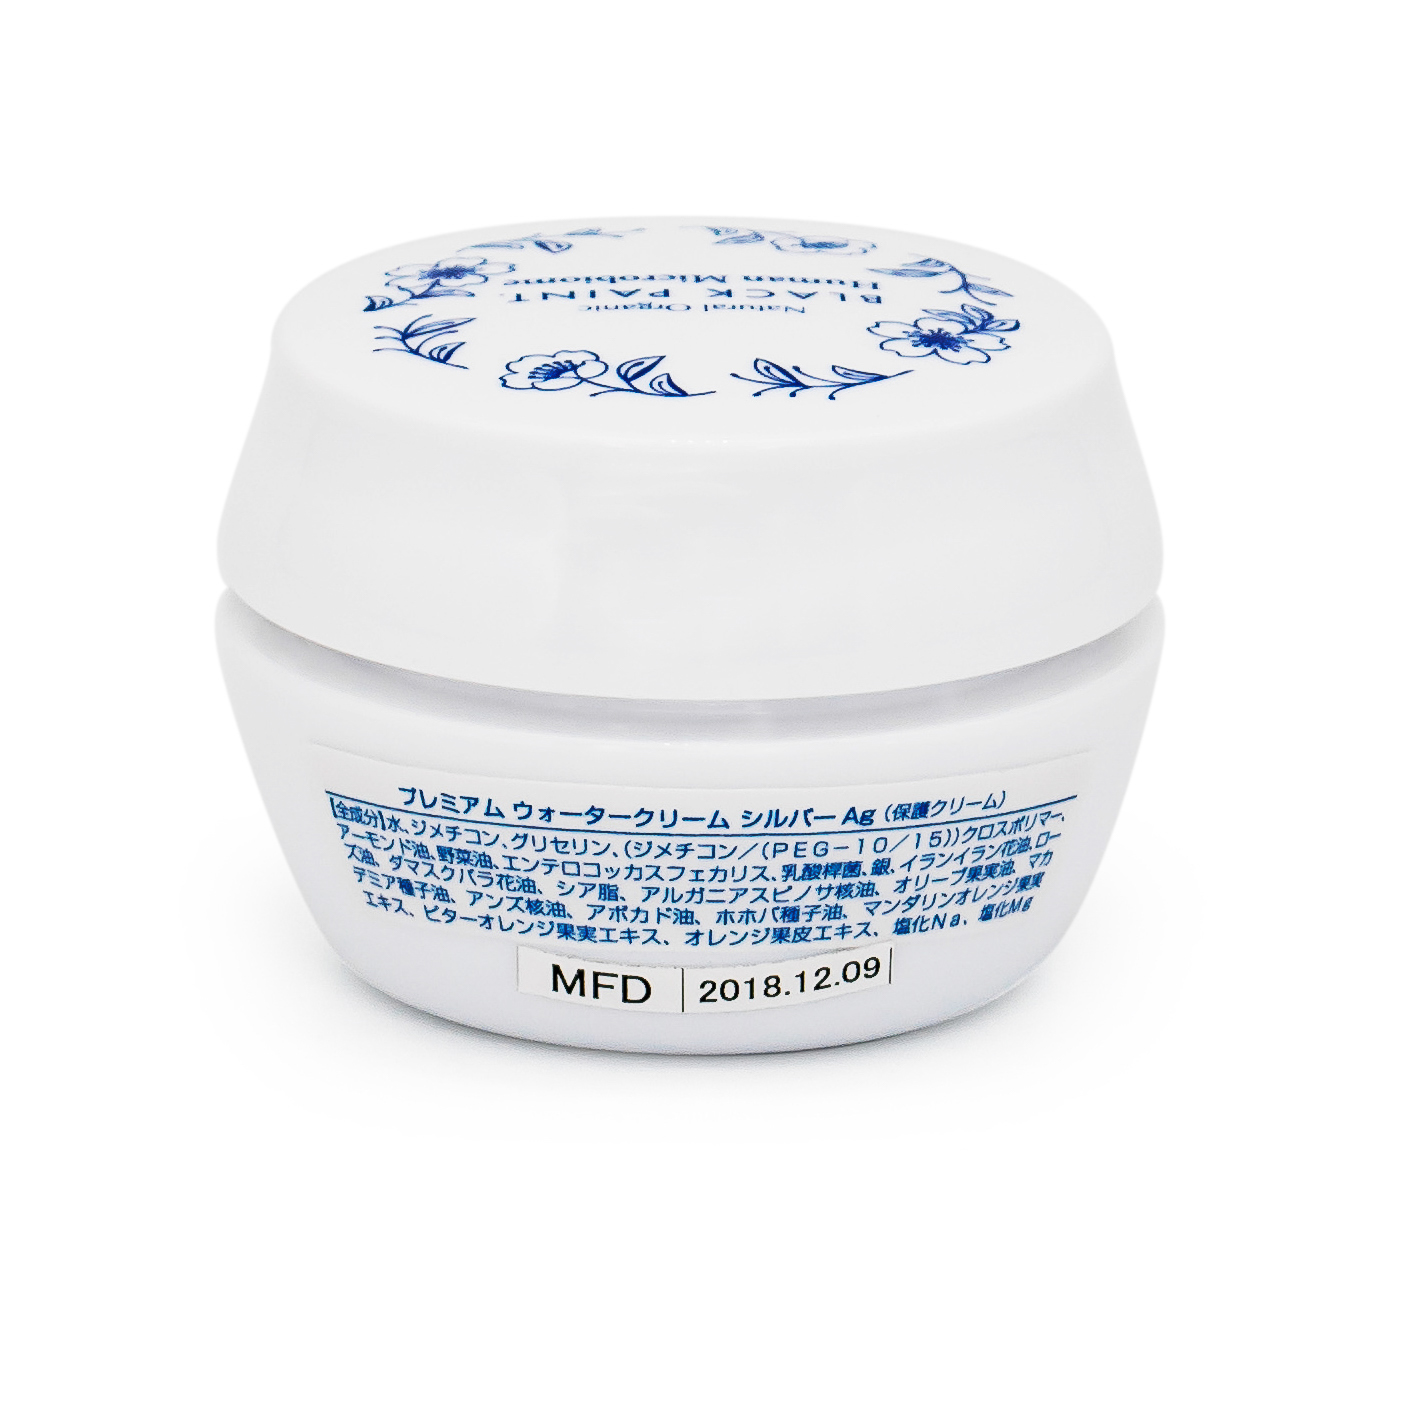 Water Cream Silver 25g with Human Microbiome - back